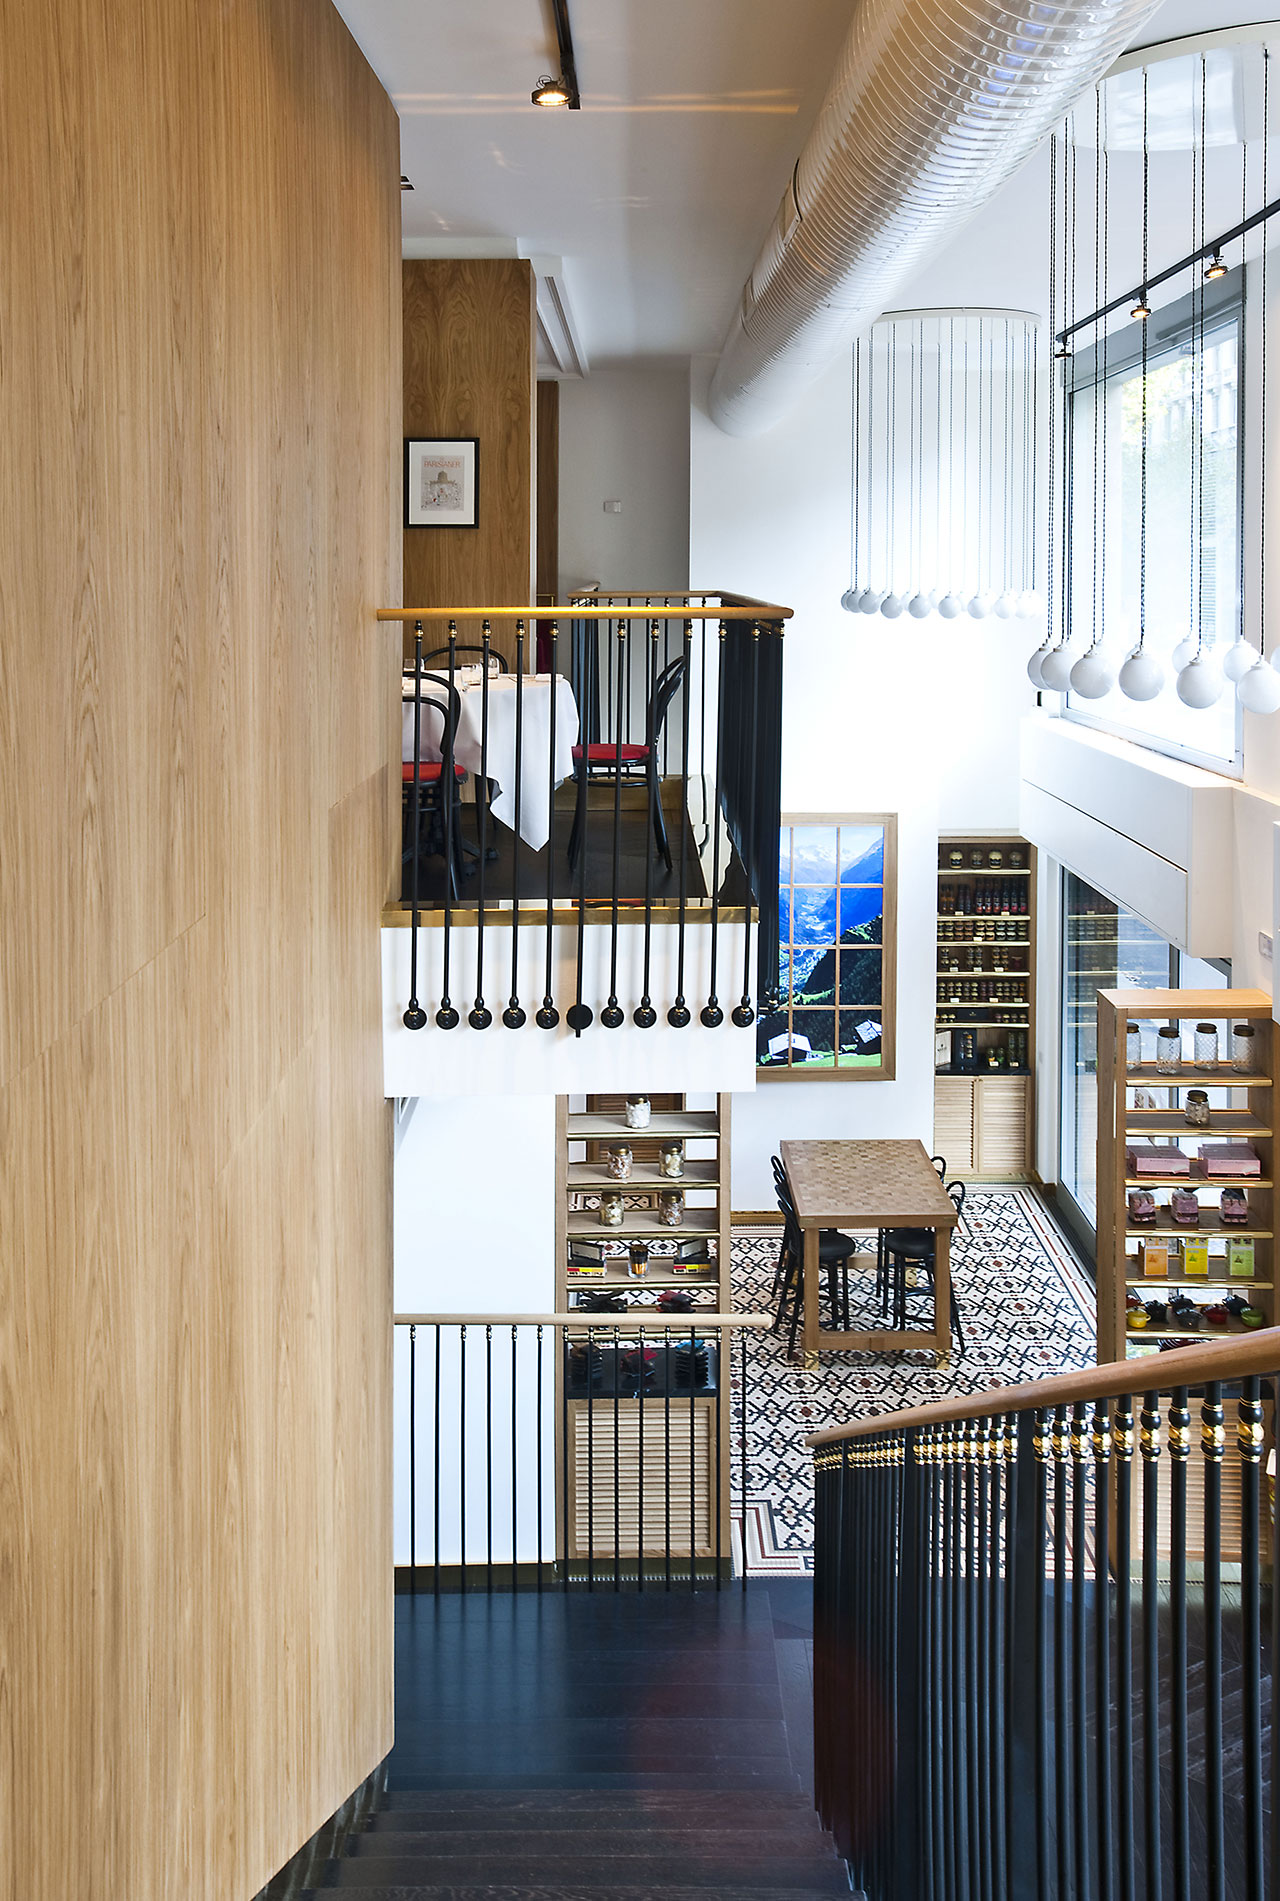 Red Truth Le Vrai Brasserie And Boulangerie In Milan By